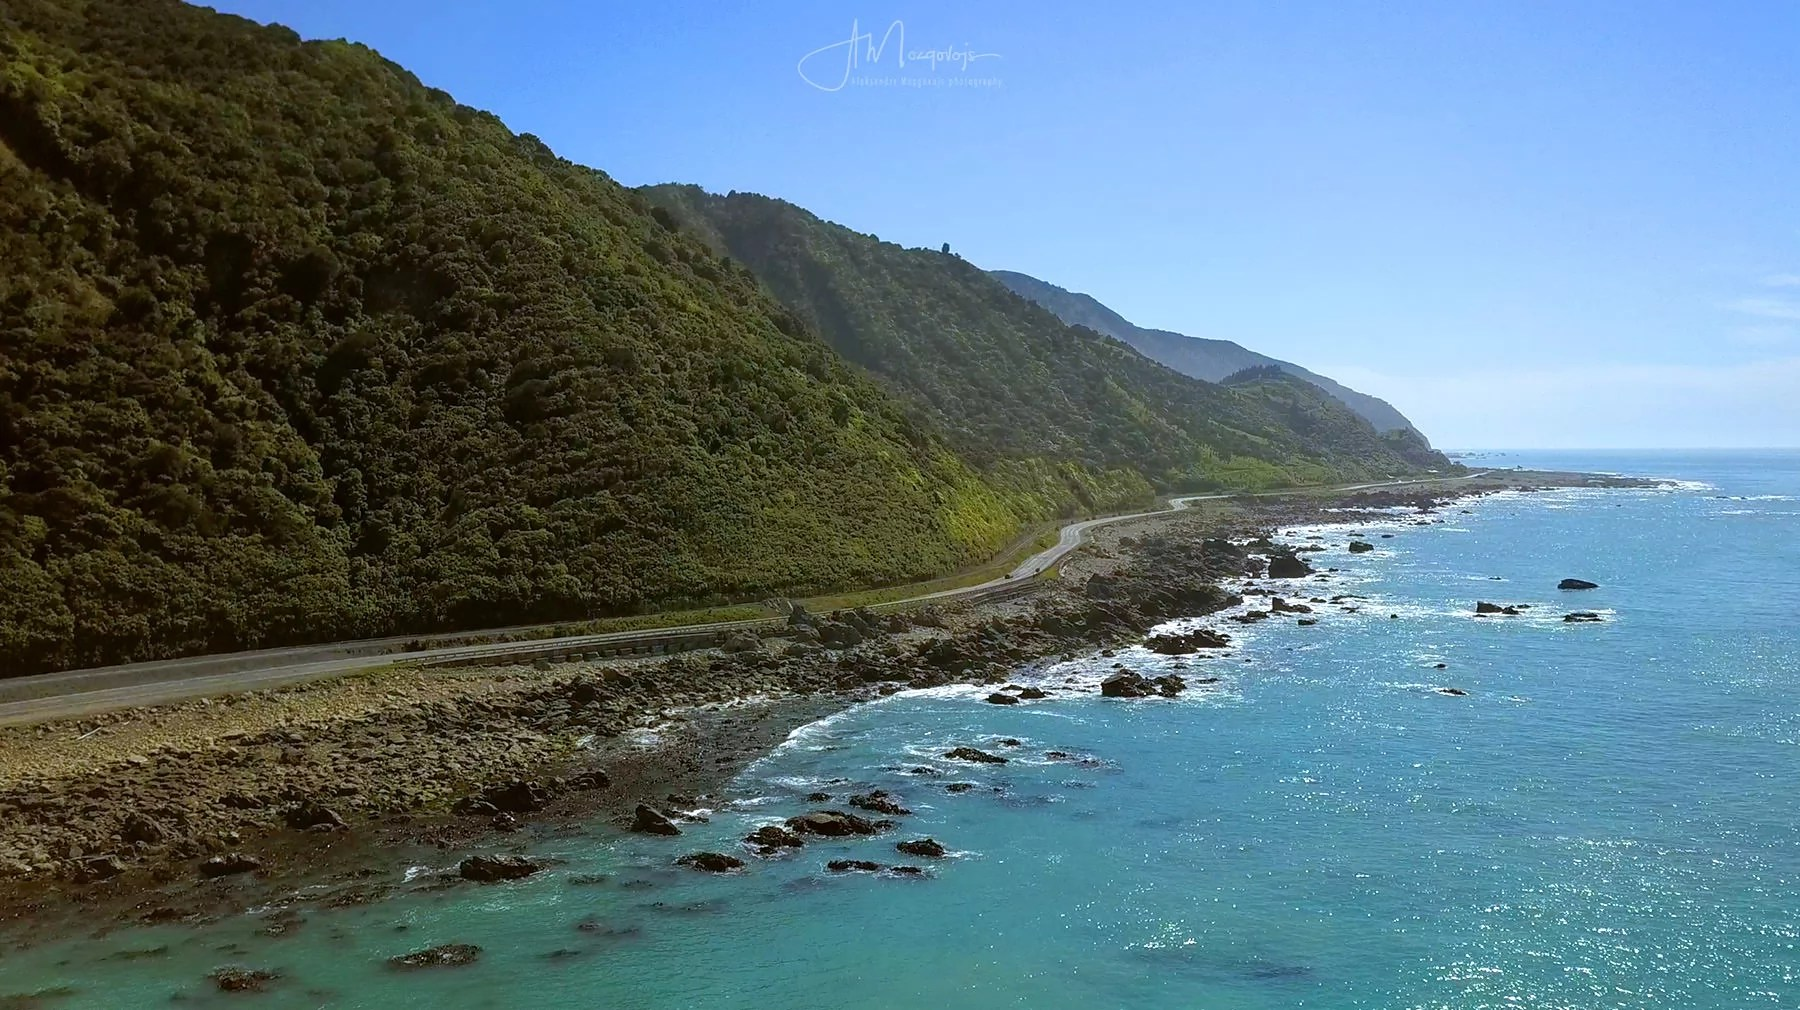 Coastal road north of Kaikoura, New Zealand